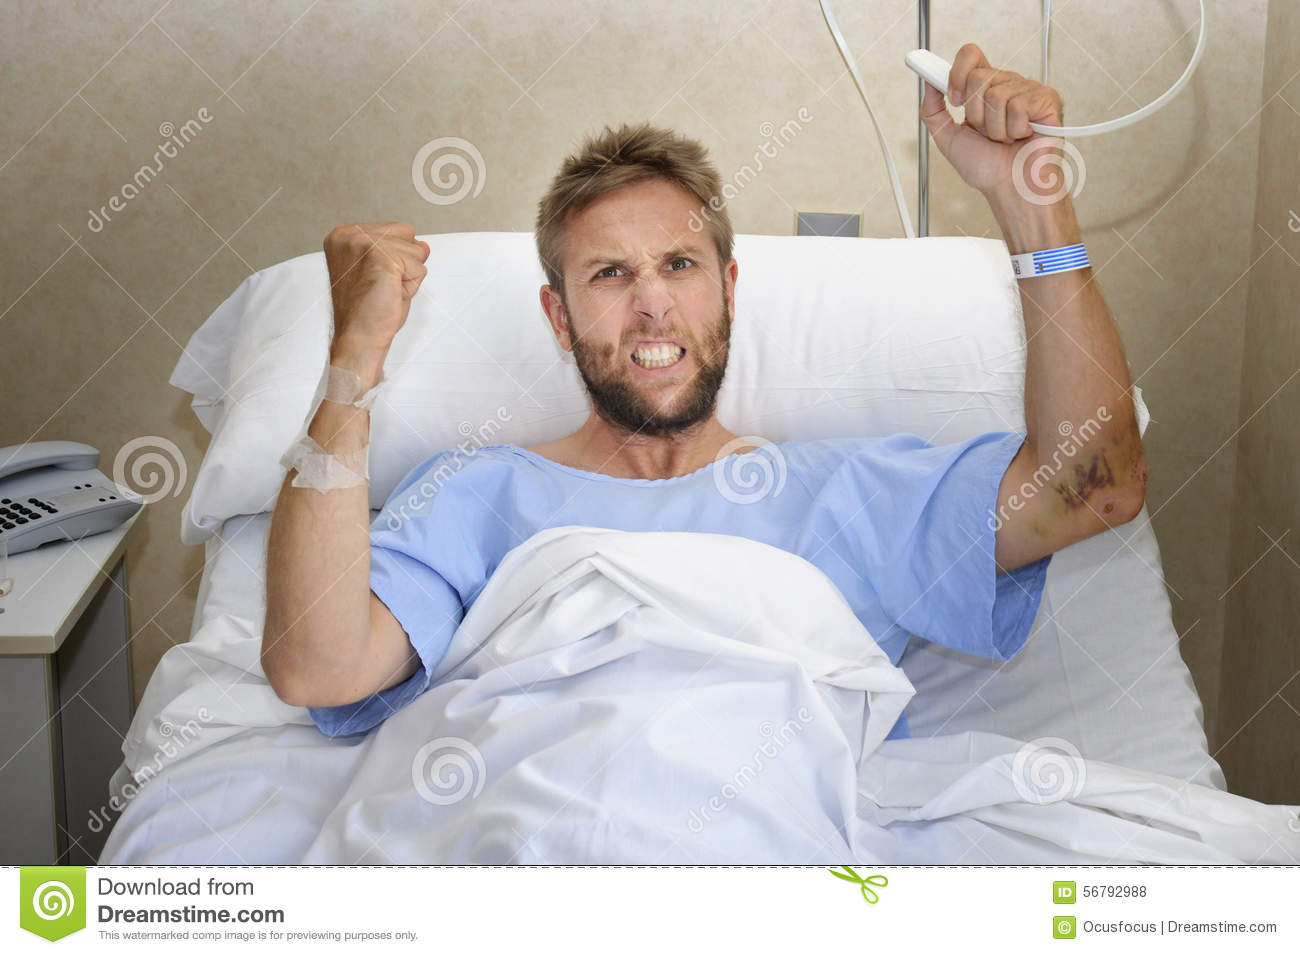 Sick Patient In Hospital Bed : Stock Photo: Angry patient man at hospital room lying in bed pressing ...